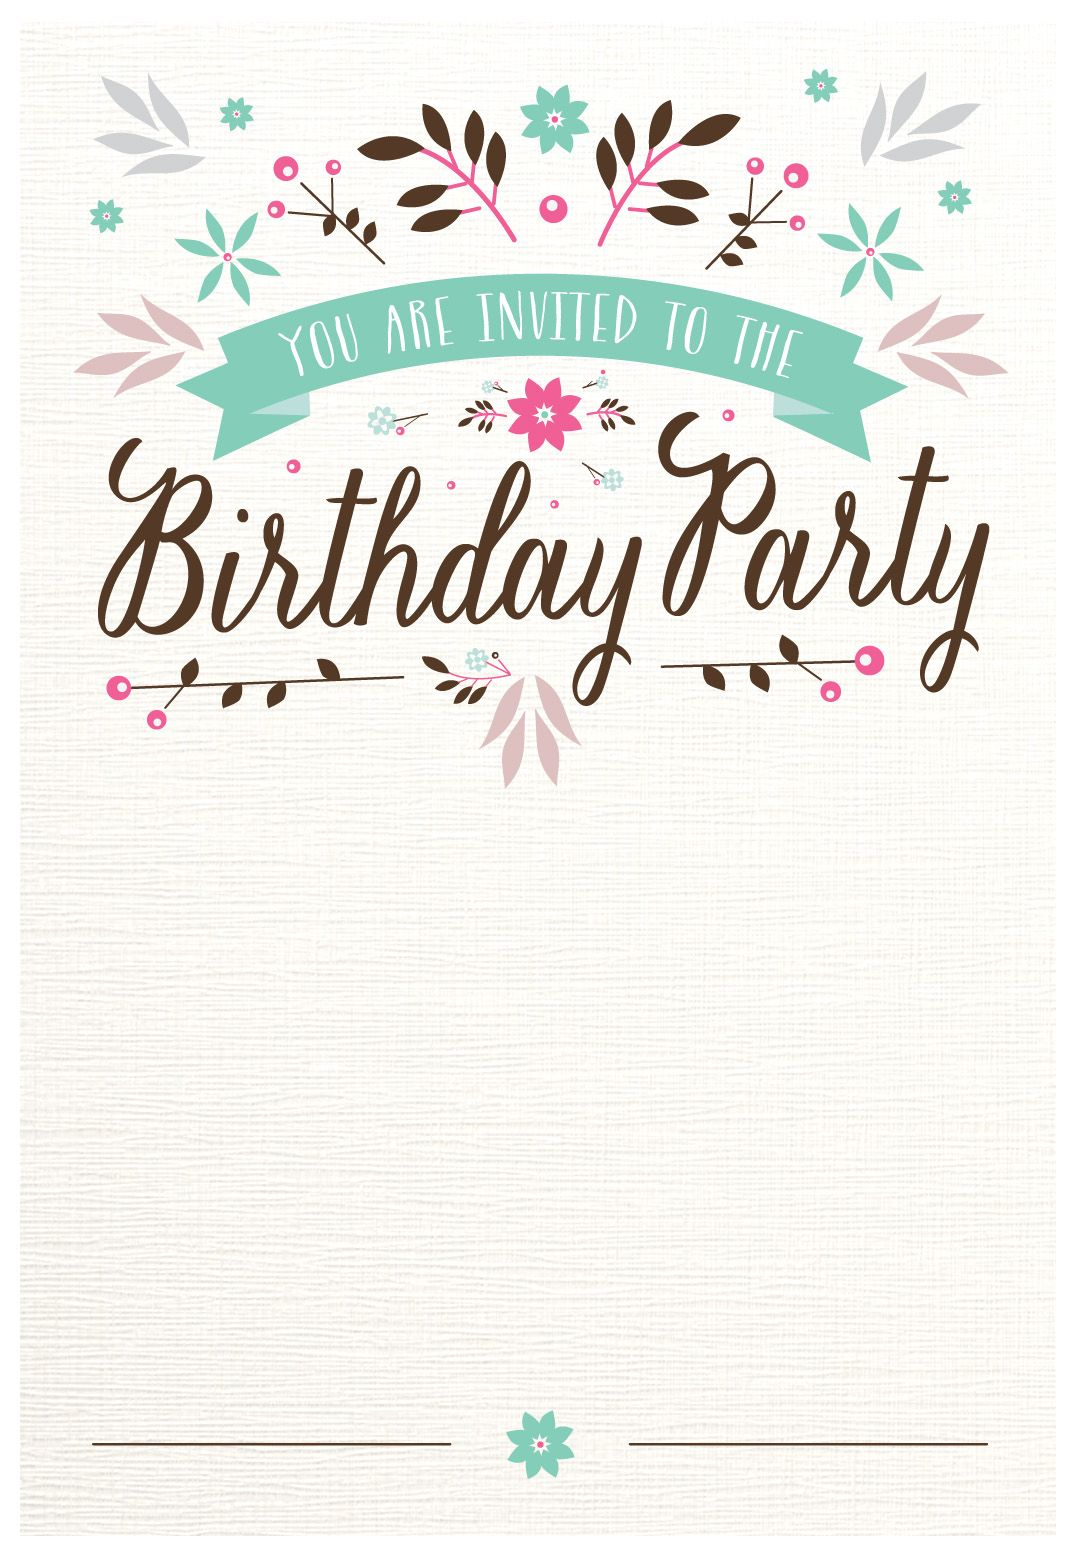 Flat Floral Free Printable Birthday Invitation Template - Free printable birthday party invitations templates